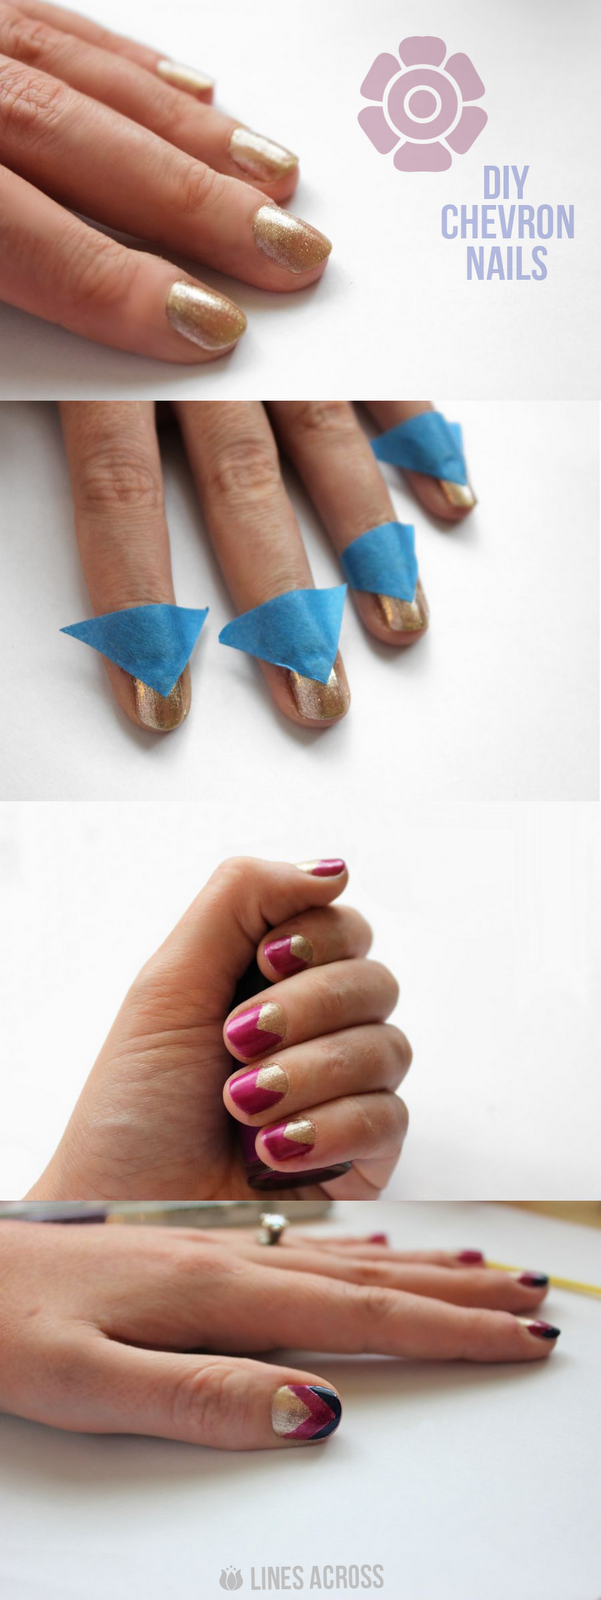 DIY Chevron Nails from Lines Across #beauty #nails